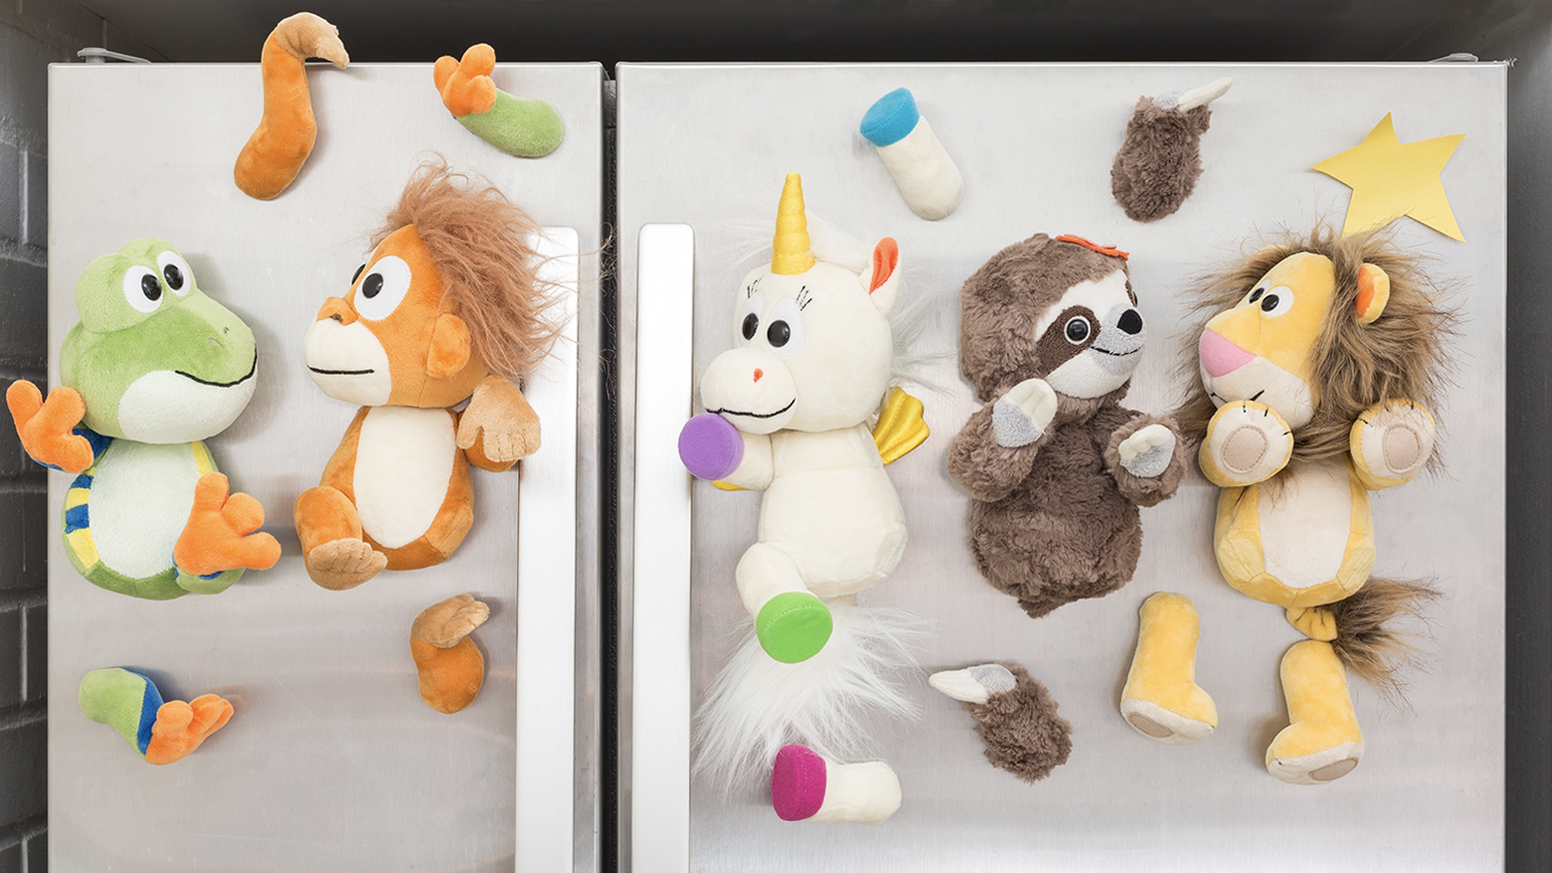 A wildly fun system of magnetic stuffed animals for kids. Mix & make endless combinations with fully interchangeable & rotating parts!